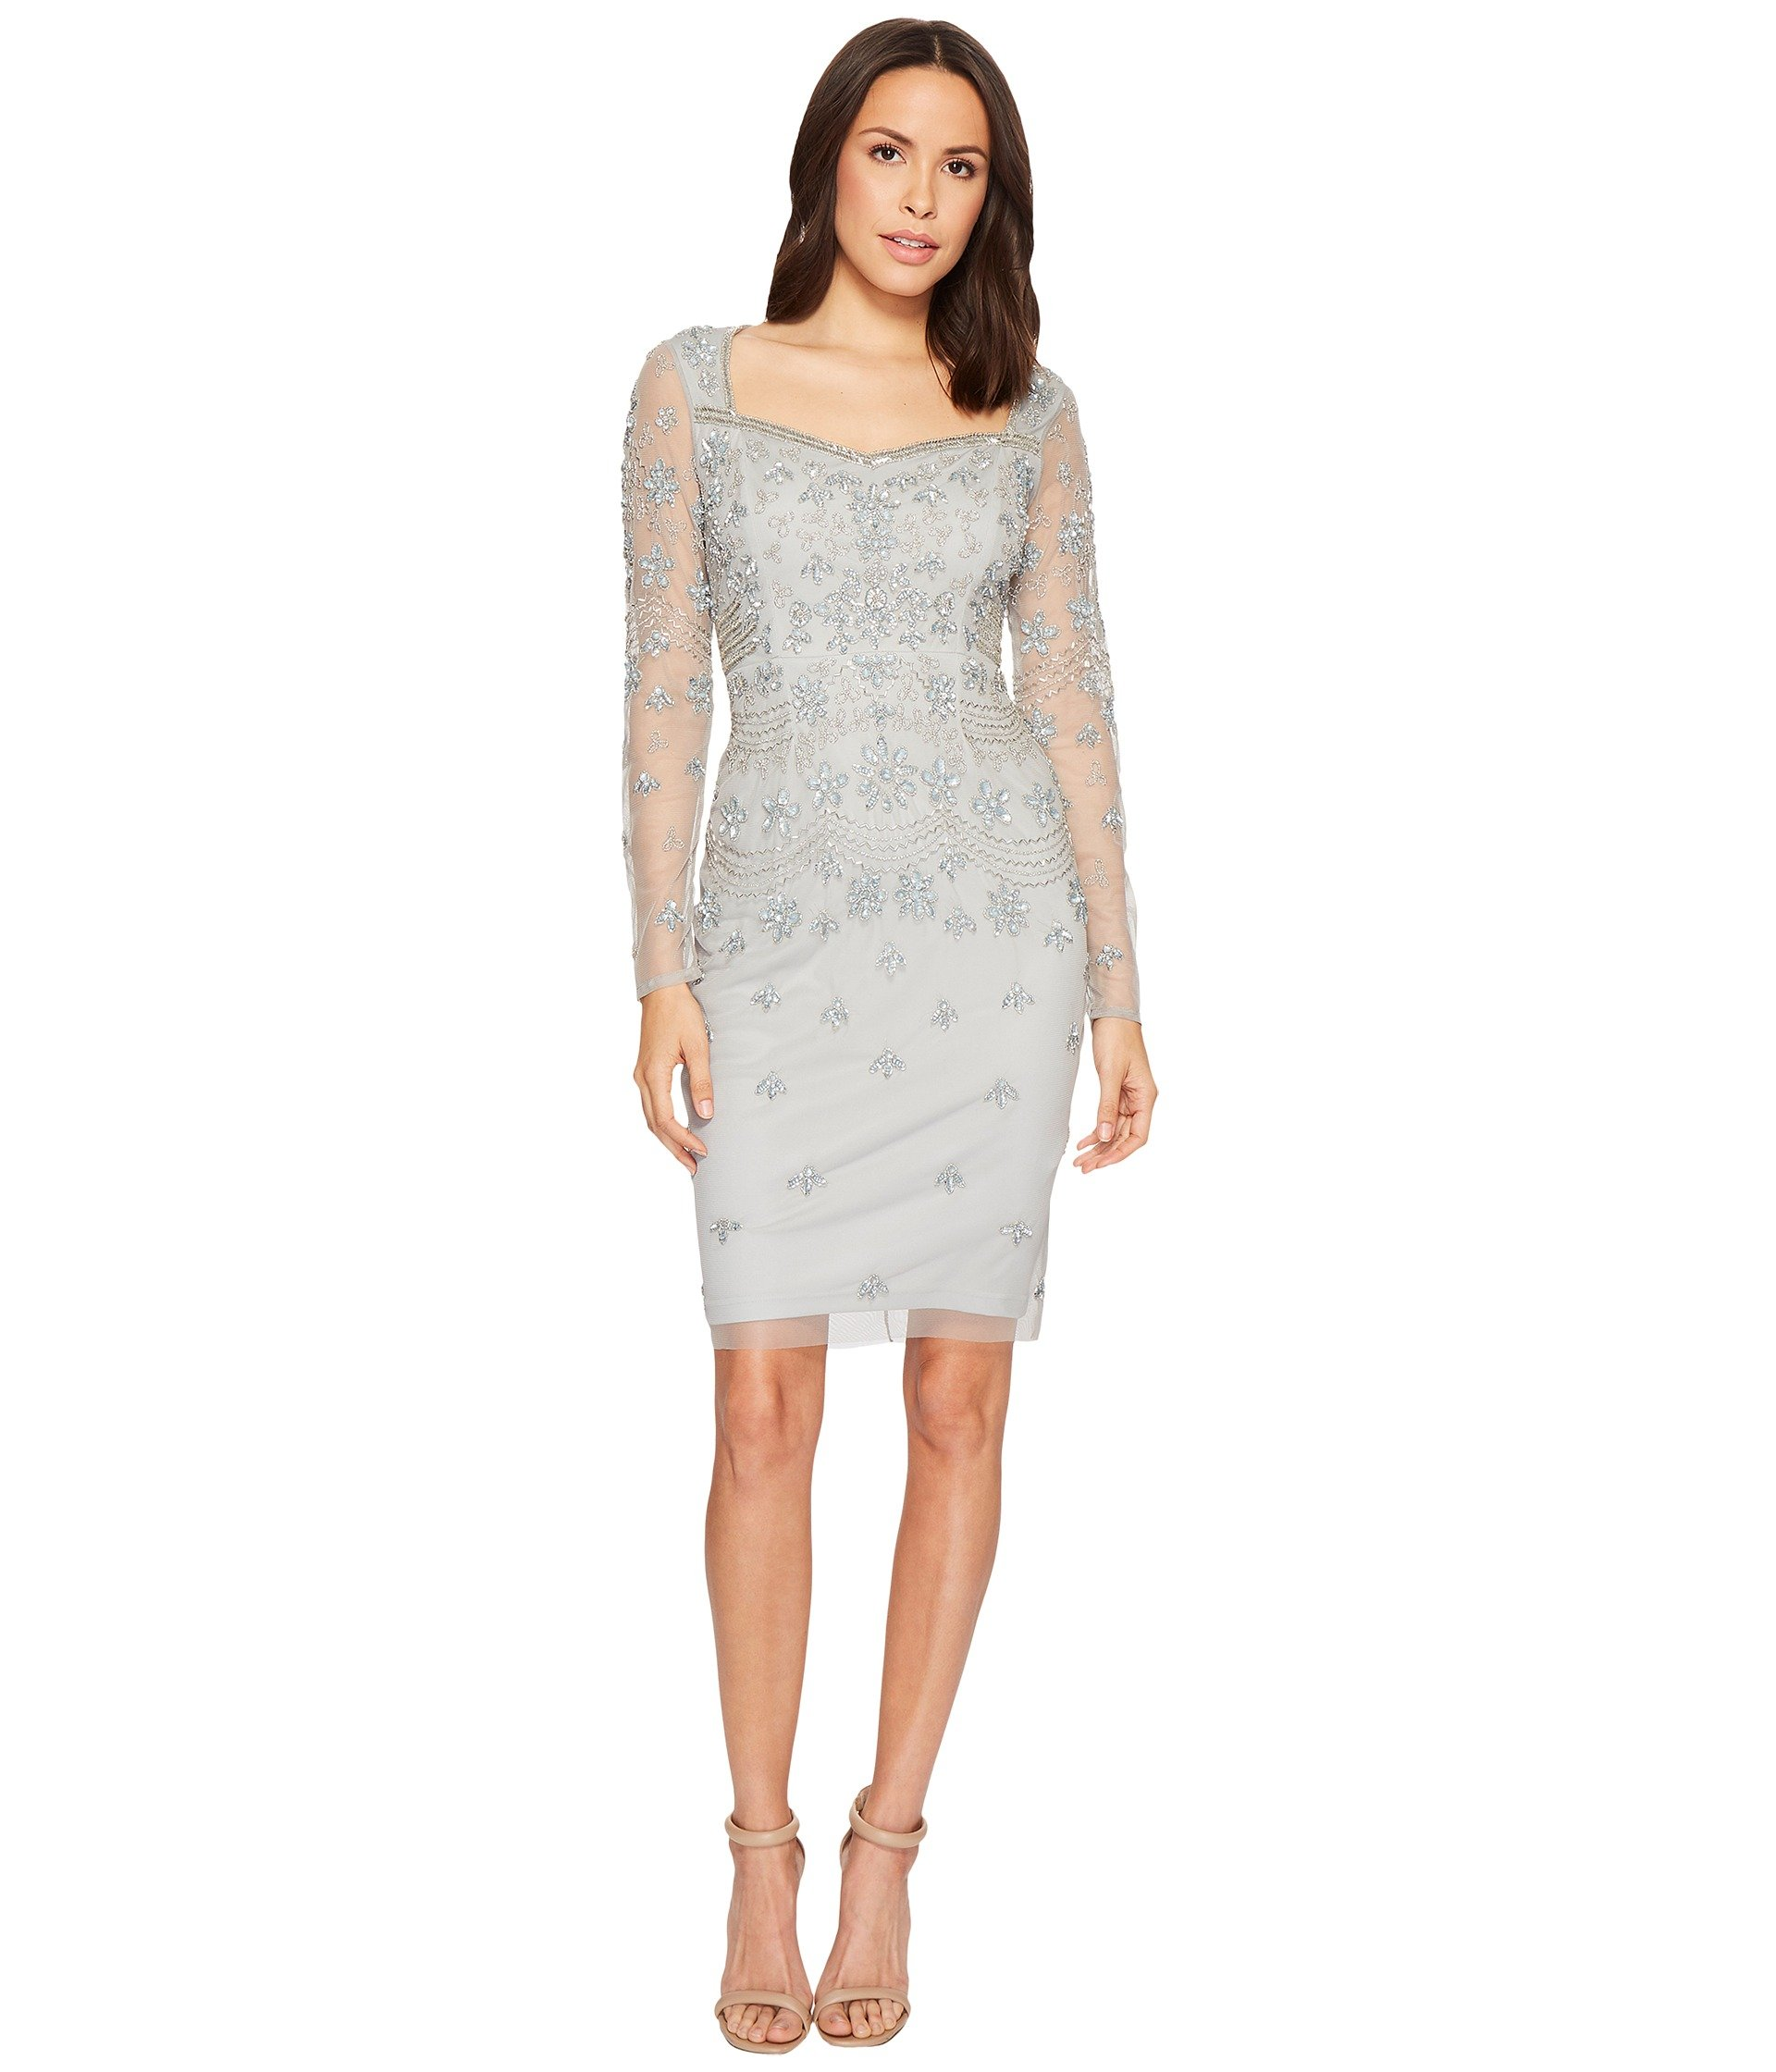 Dresses, Women, Beaded | Shipped Free at Zappos